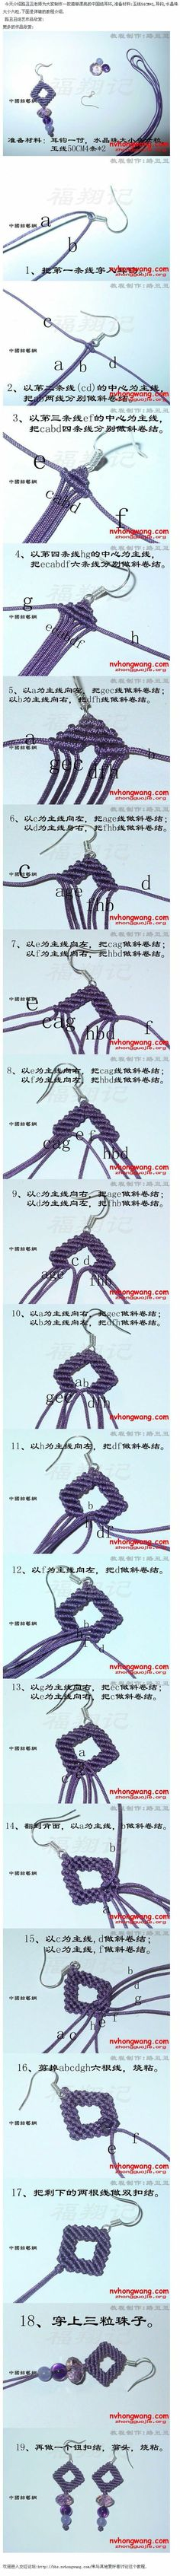 Simple and beautiful Chinese knot earrings tutorial. superrrr!!!!!!!!!!!!!!!!